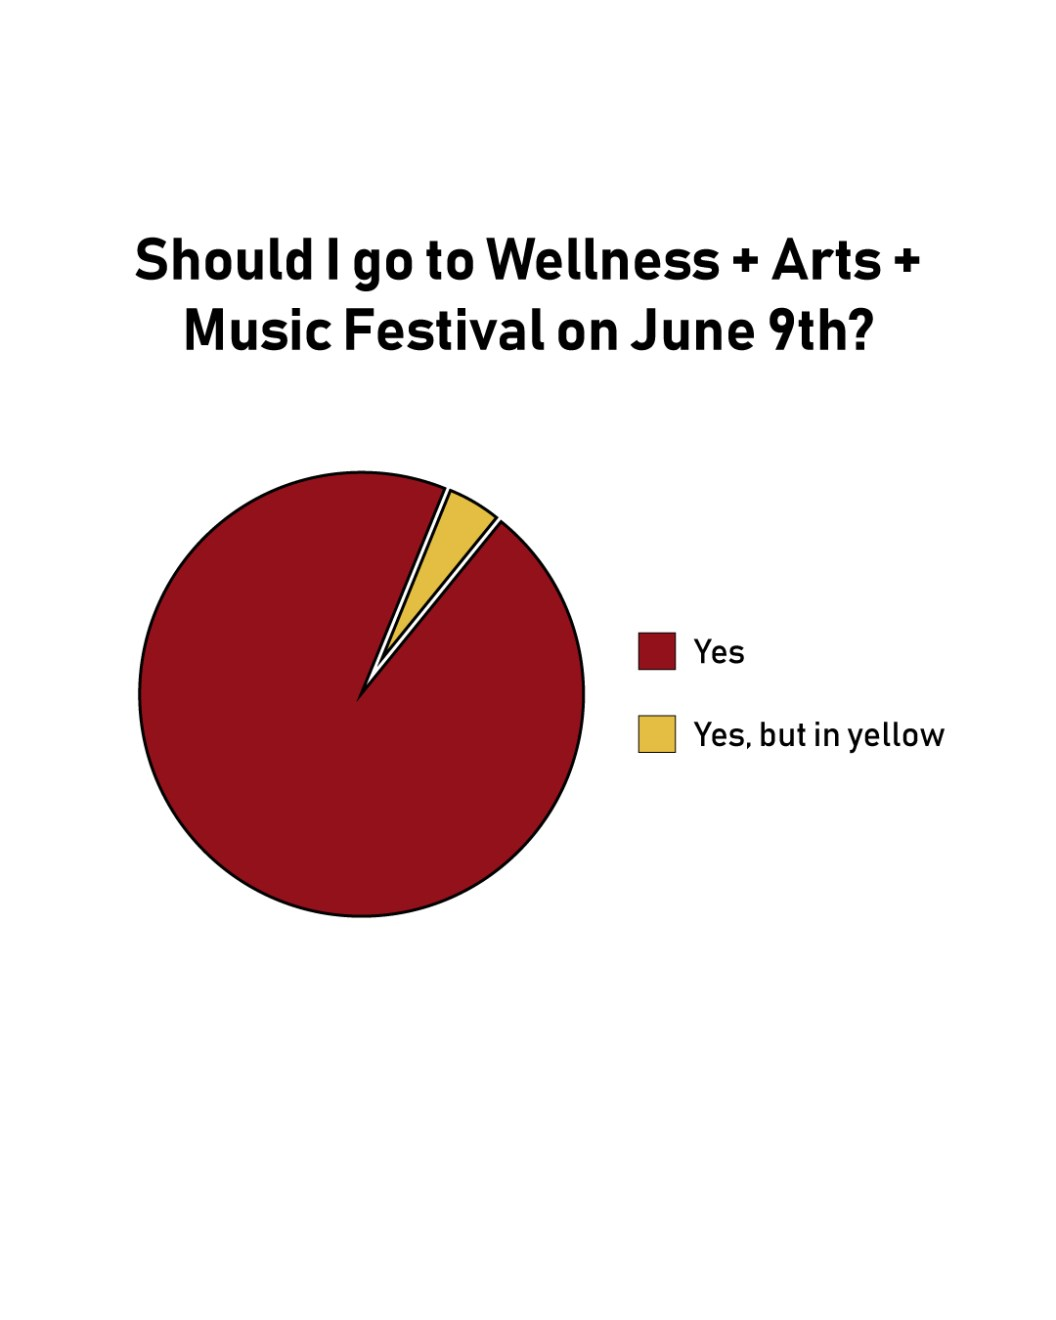 Yes-and-Yes-Pie-Chart